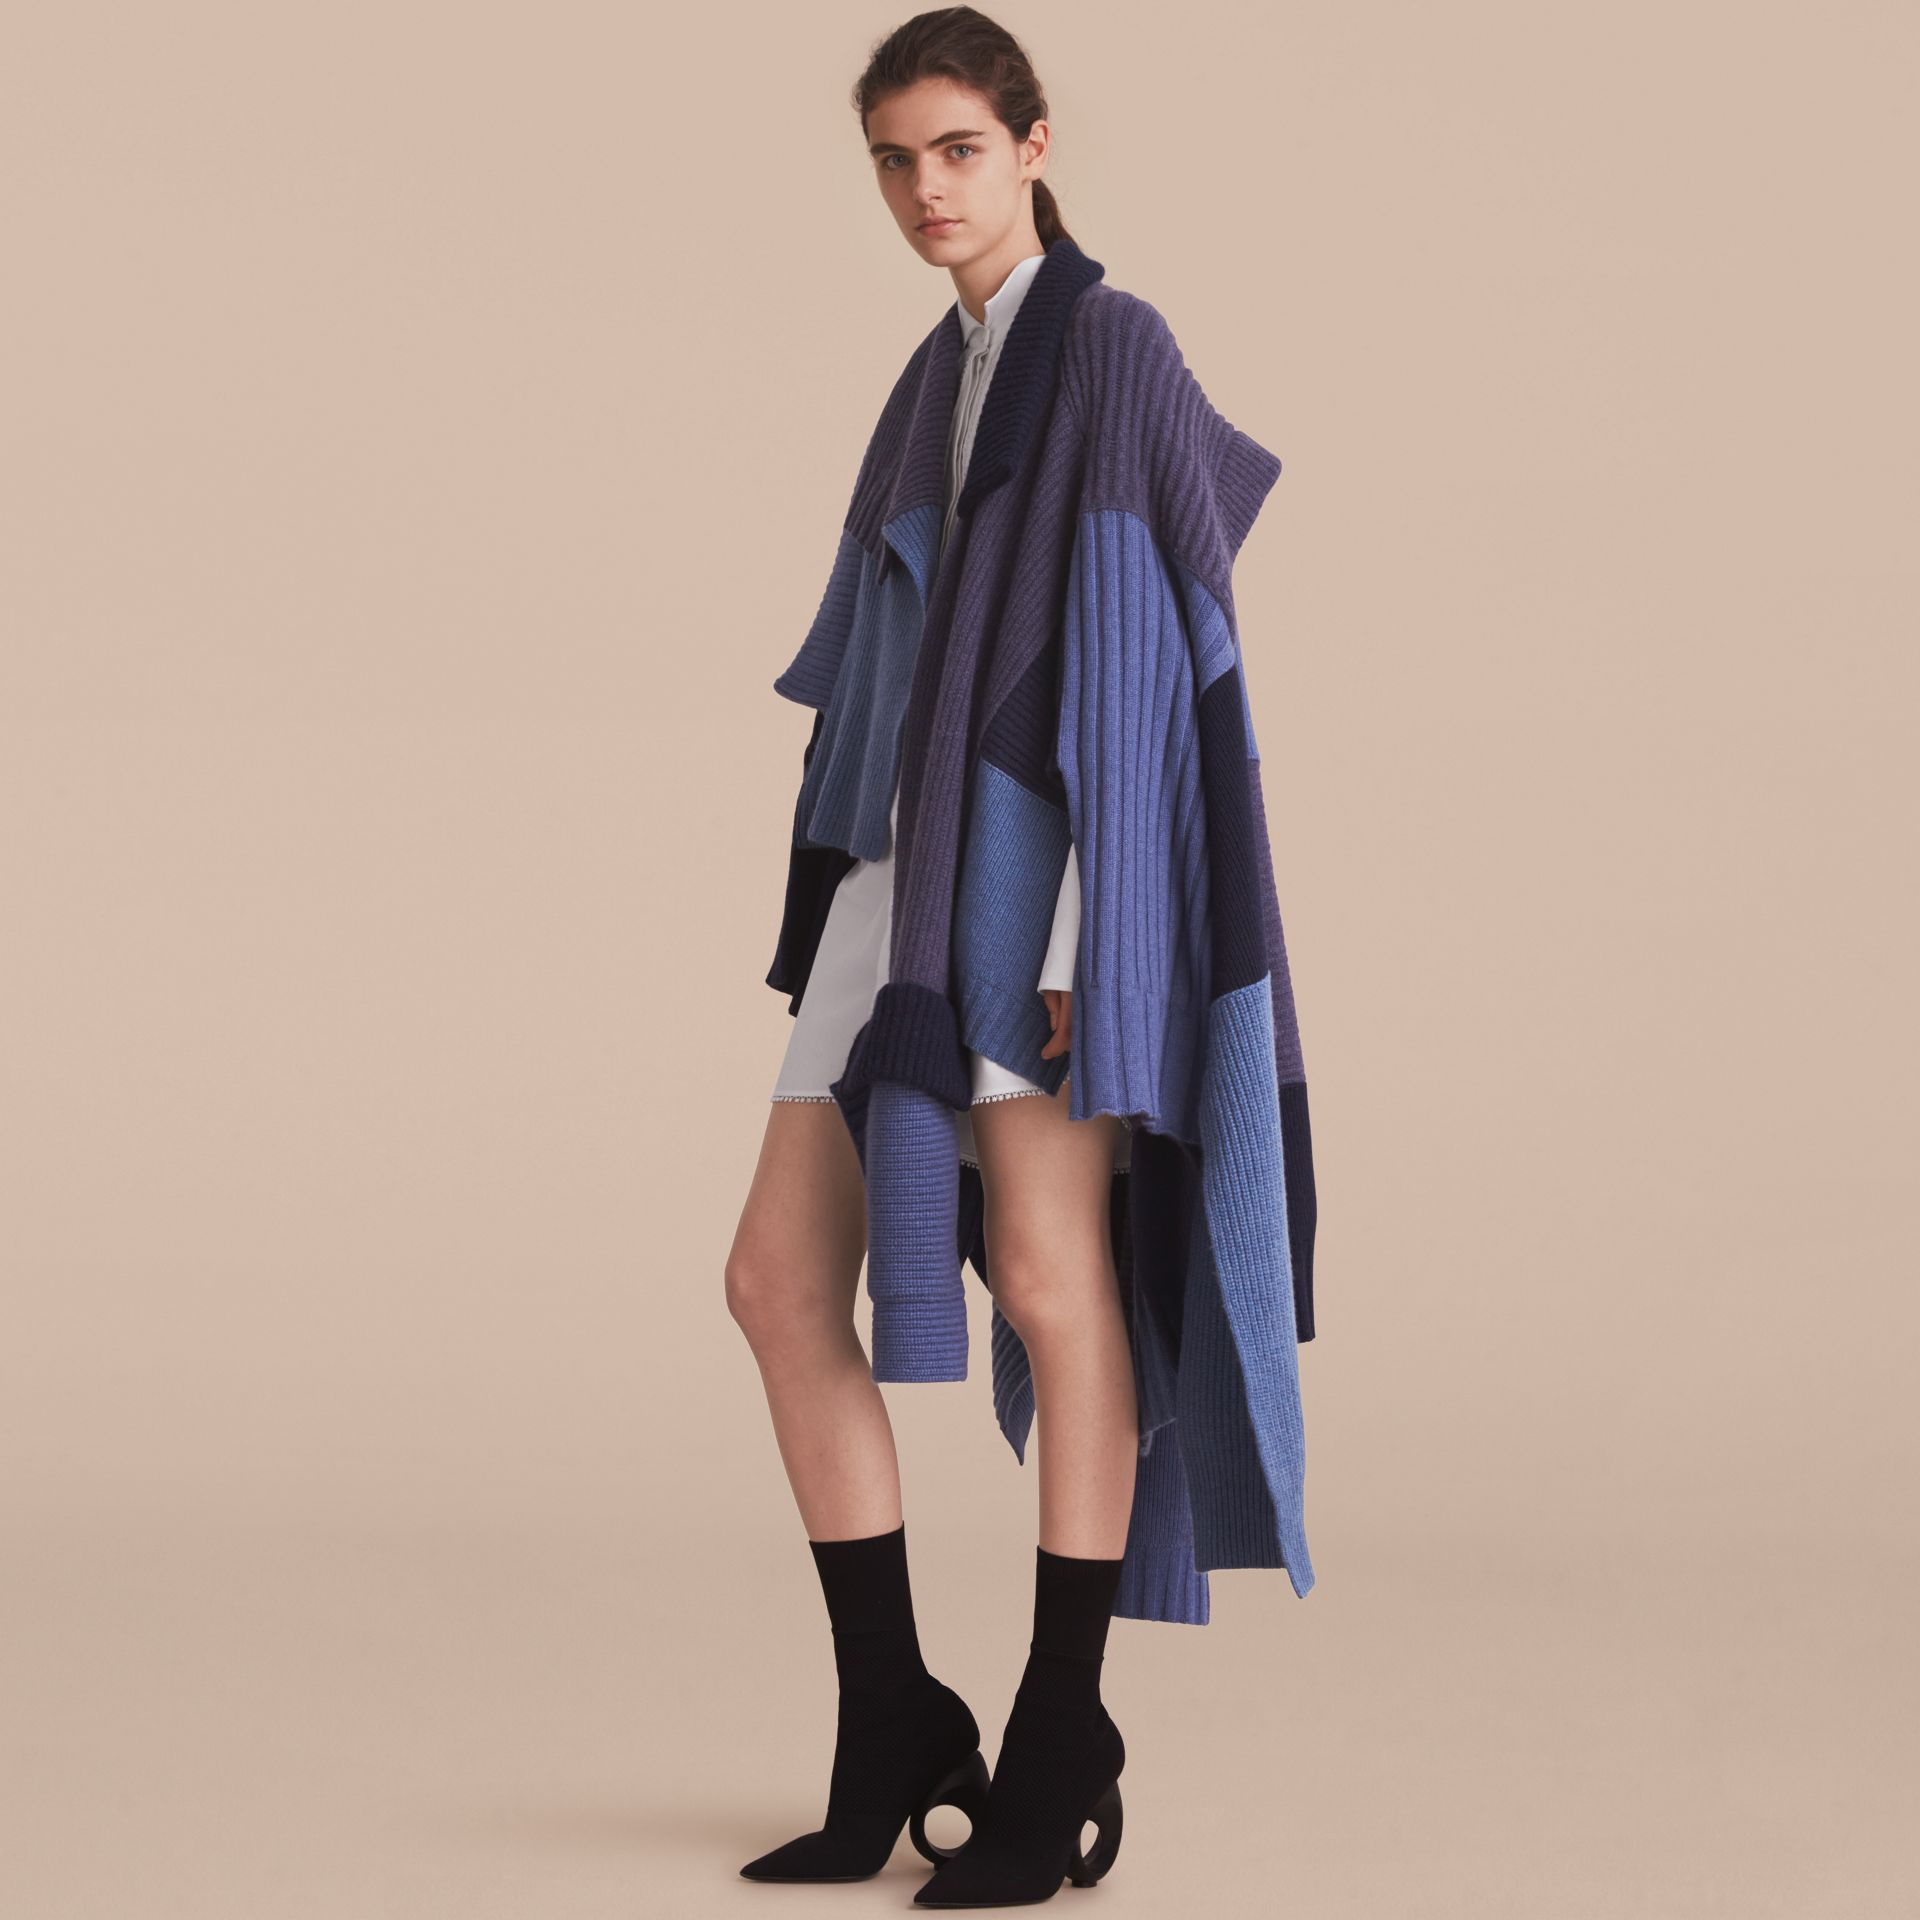 Wool Cashmere Patchwork Poncho in Carbon Blue - Women | Burberry - gallery image 6